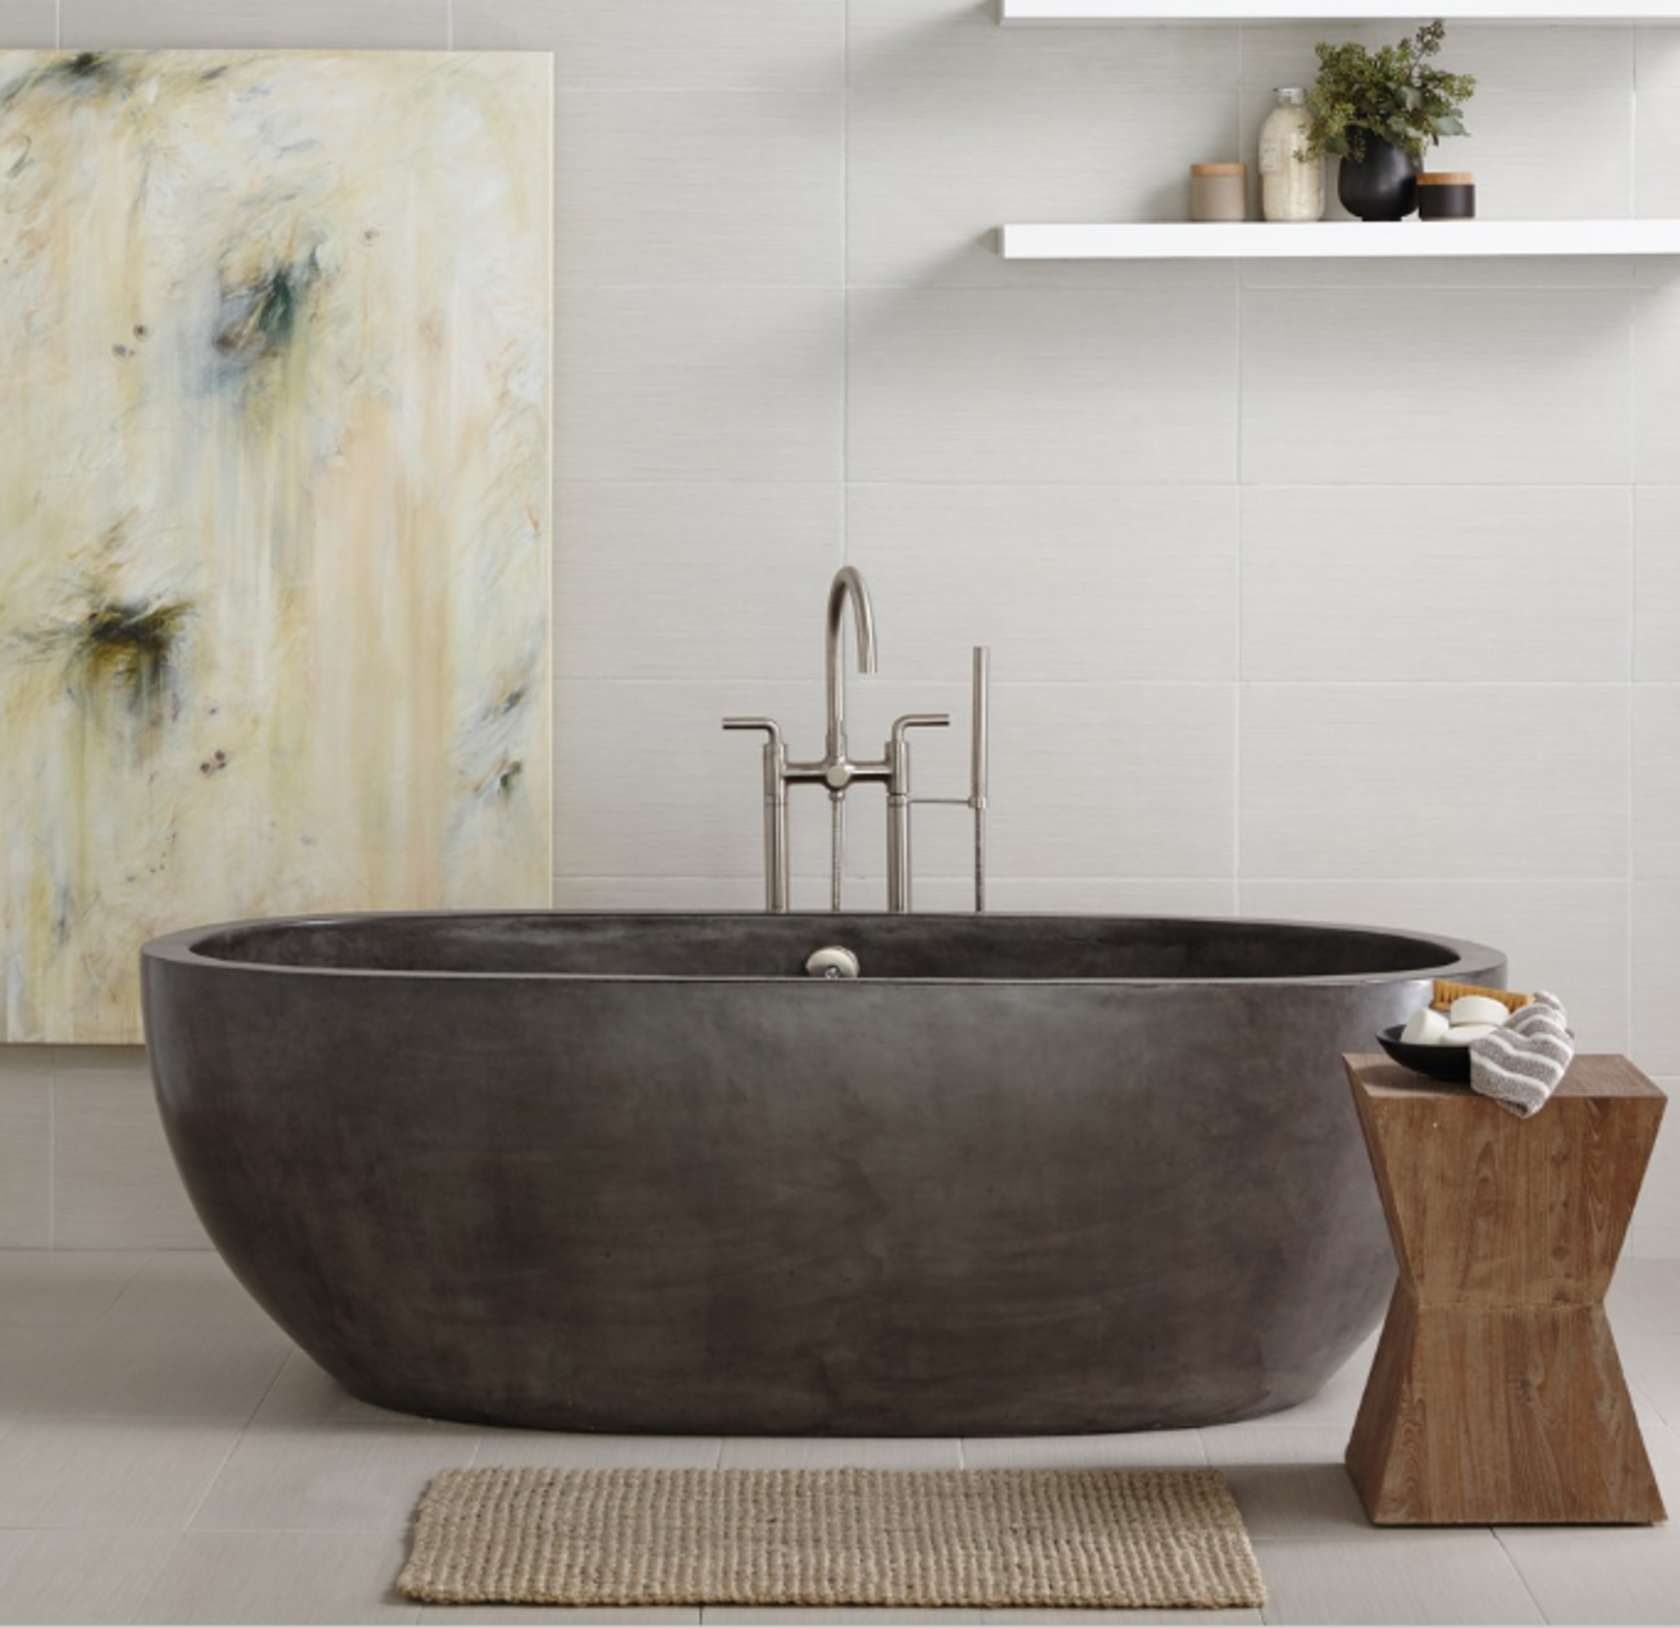 Super Soakers: 9 Out-Of-The-Ordinary Tubs for Updating a Residential ...